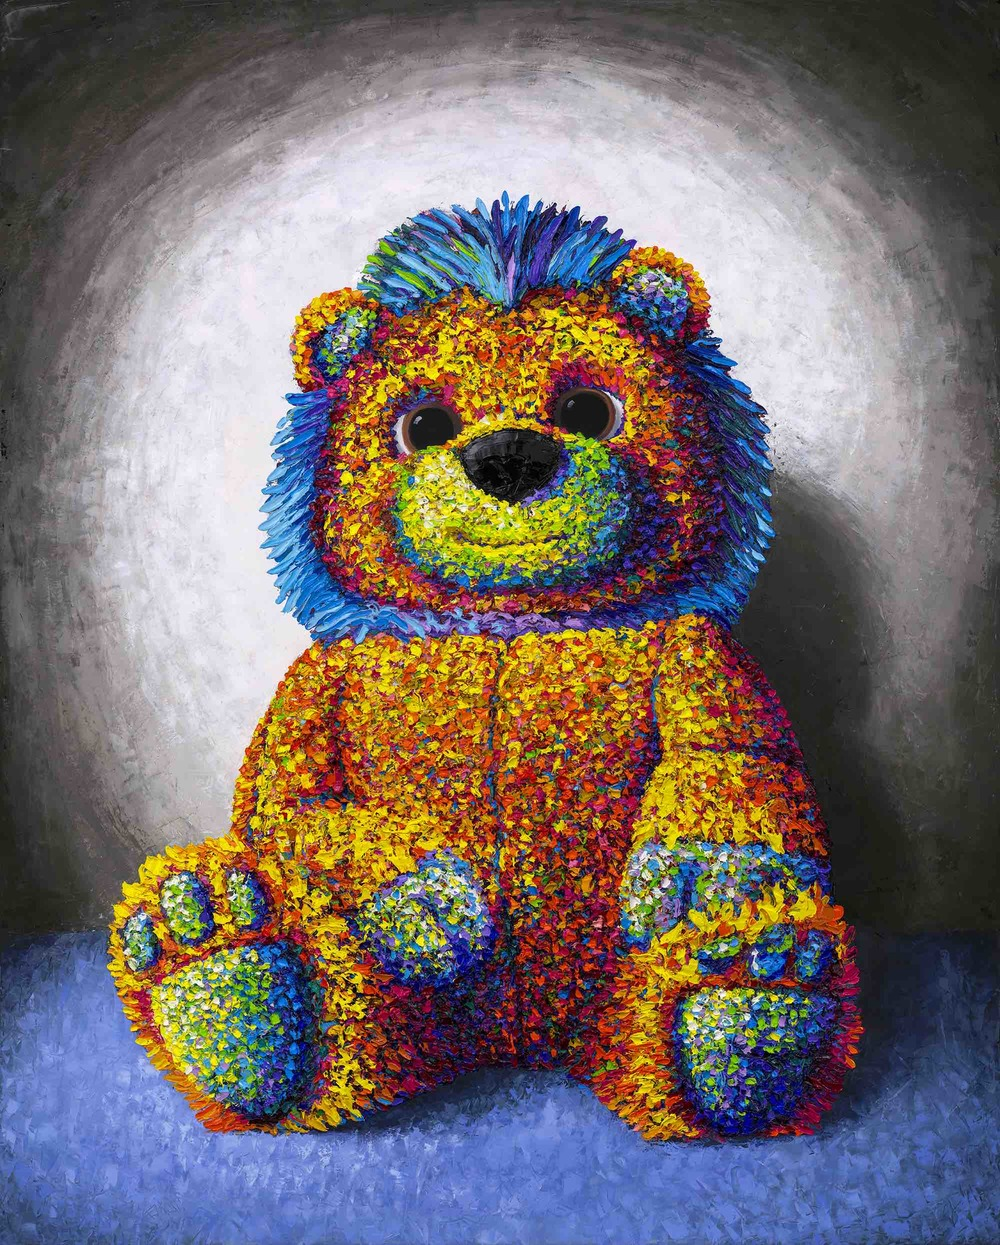 colorful-textured-lion-stuffed-animal-painting-brent-estabrook.jpg